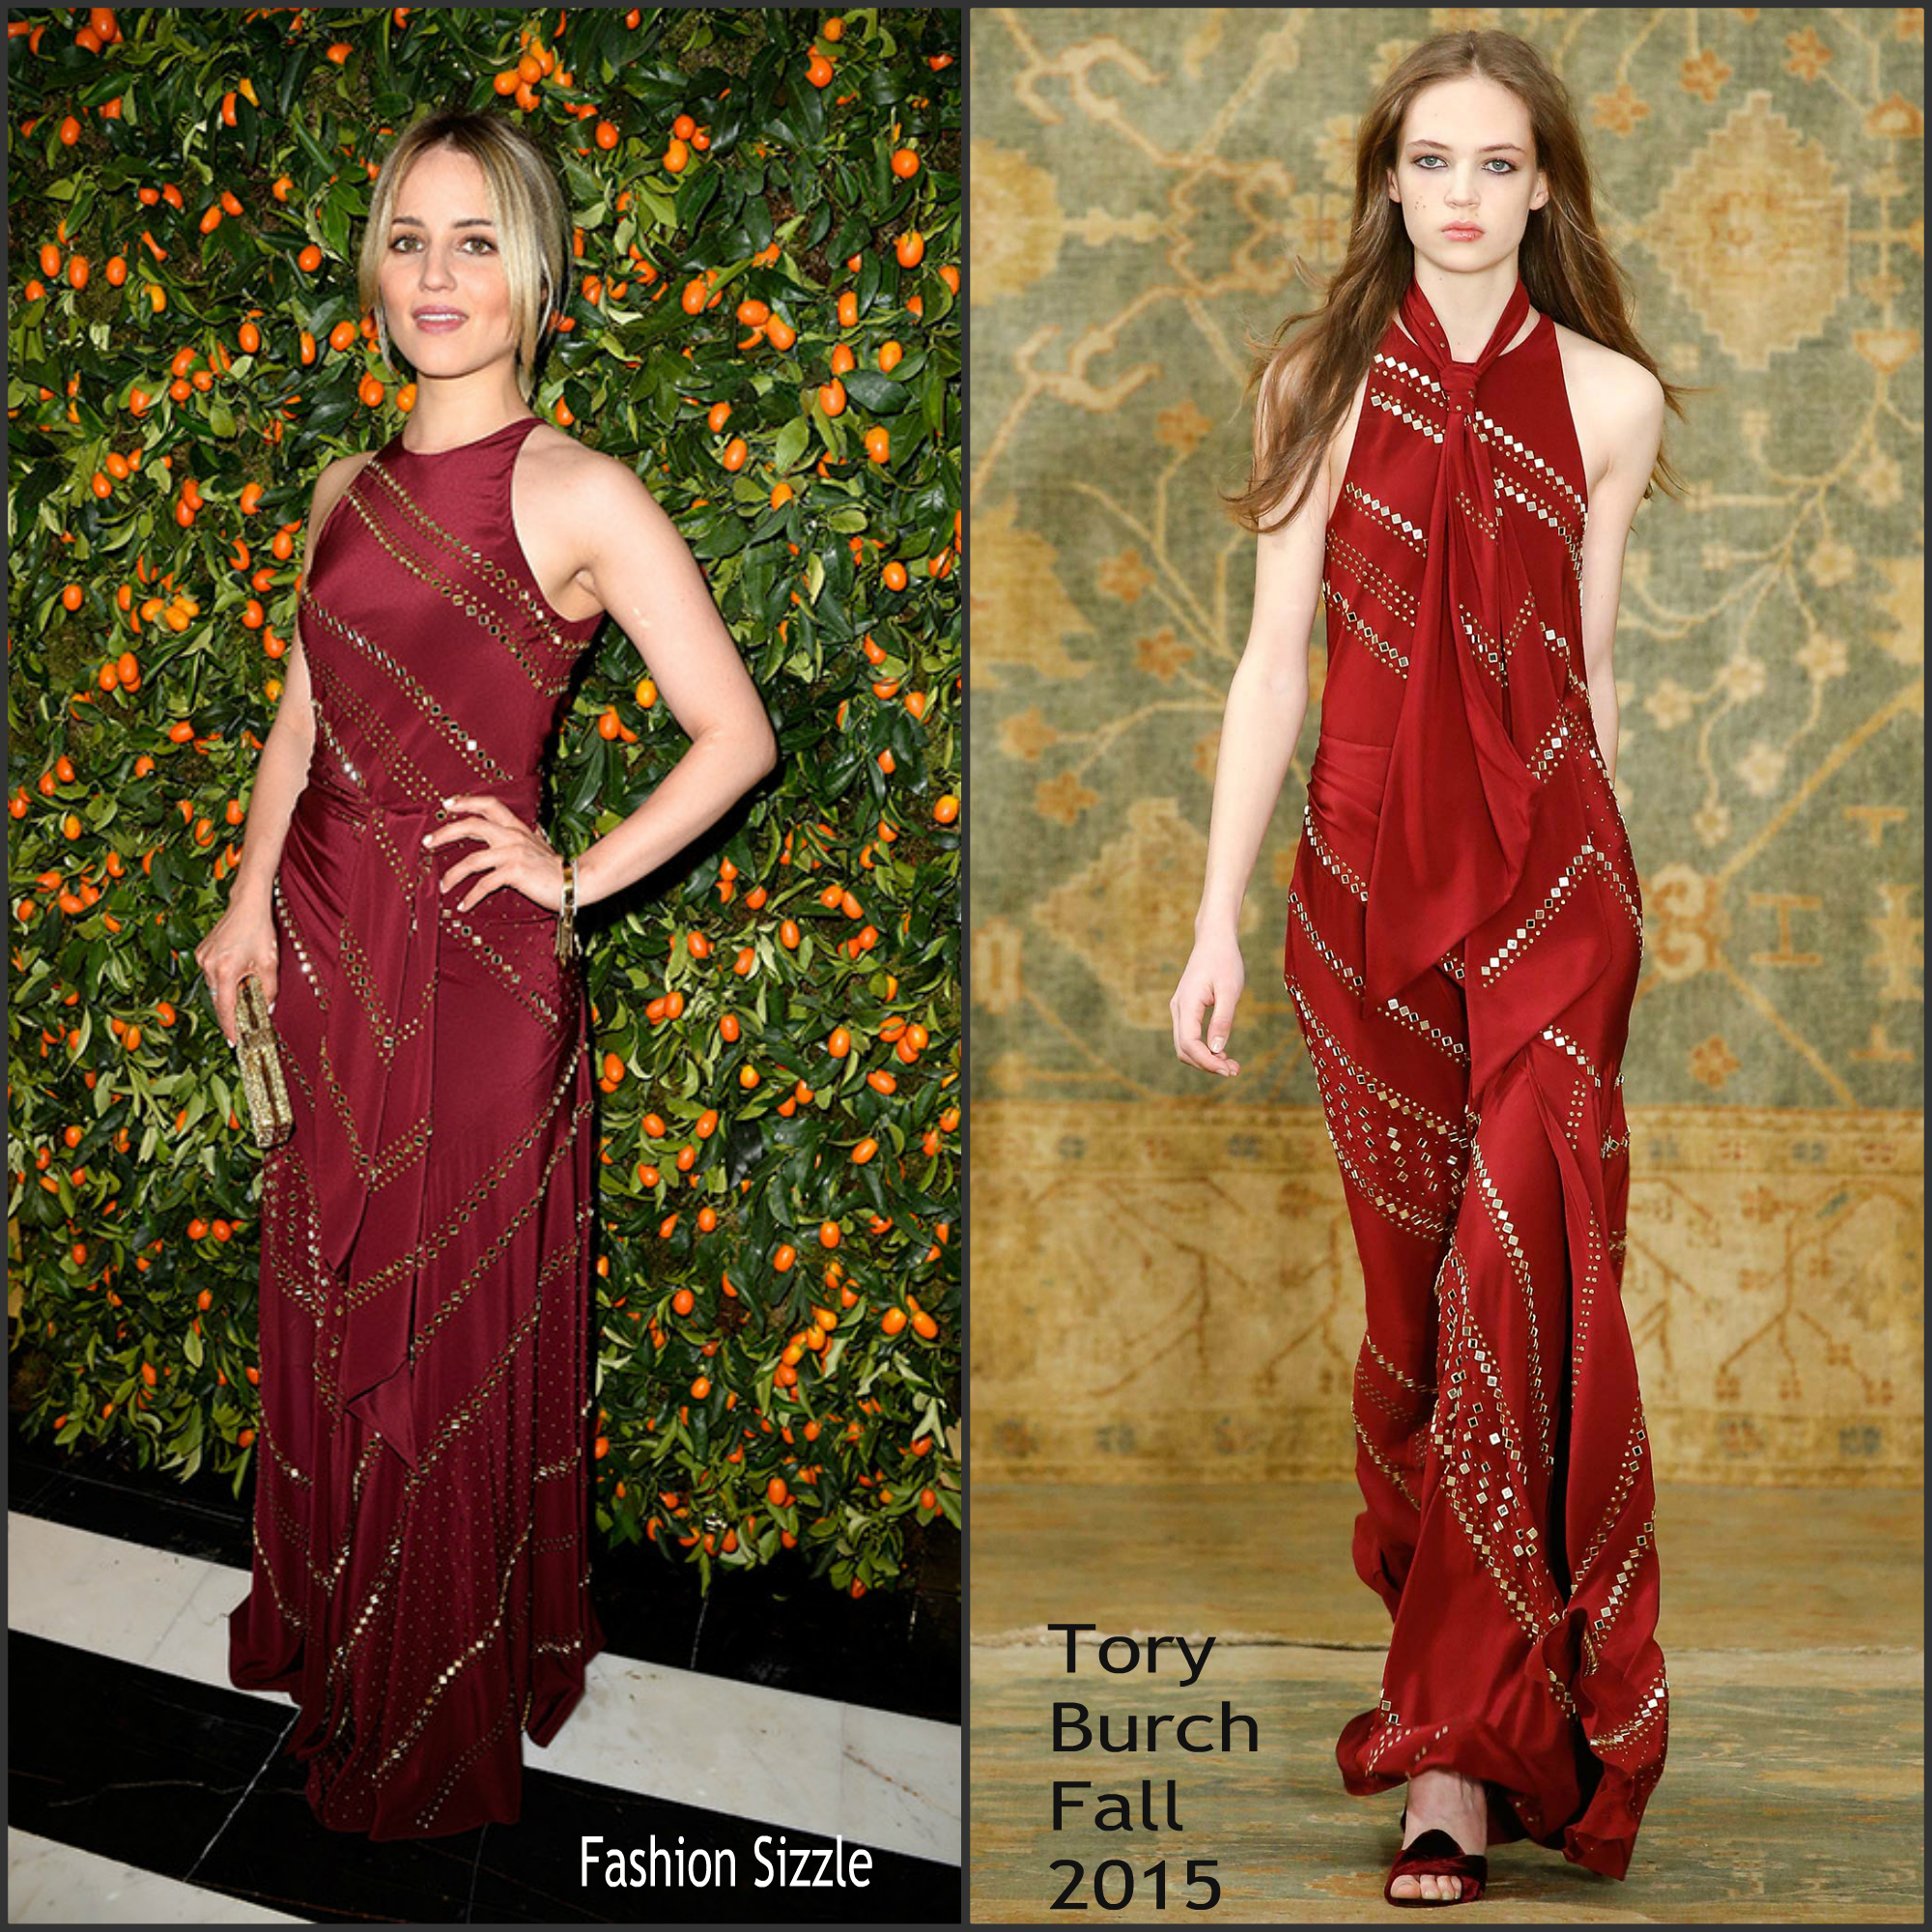 dianna-agron-in-tory-burch-at-tory-burch-paris-flag-opening